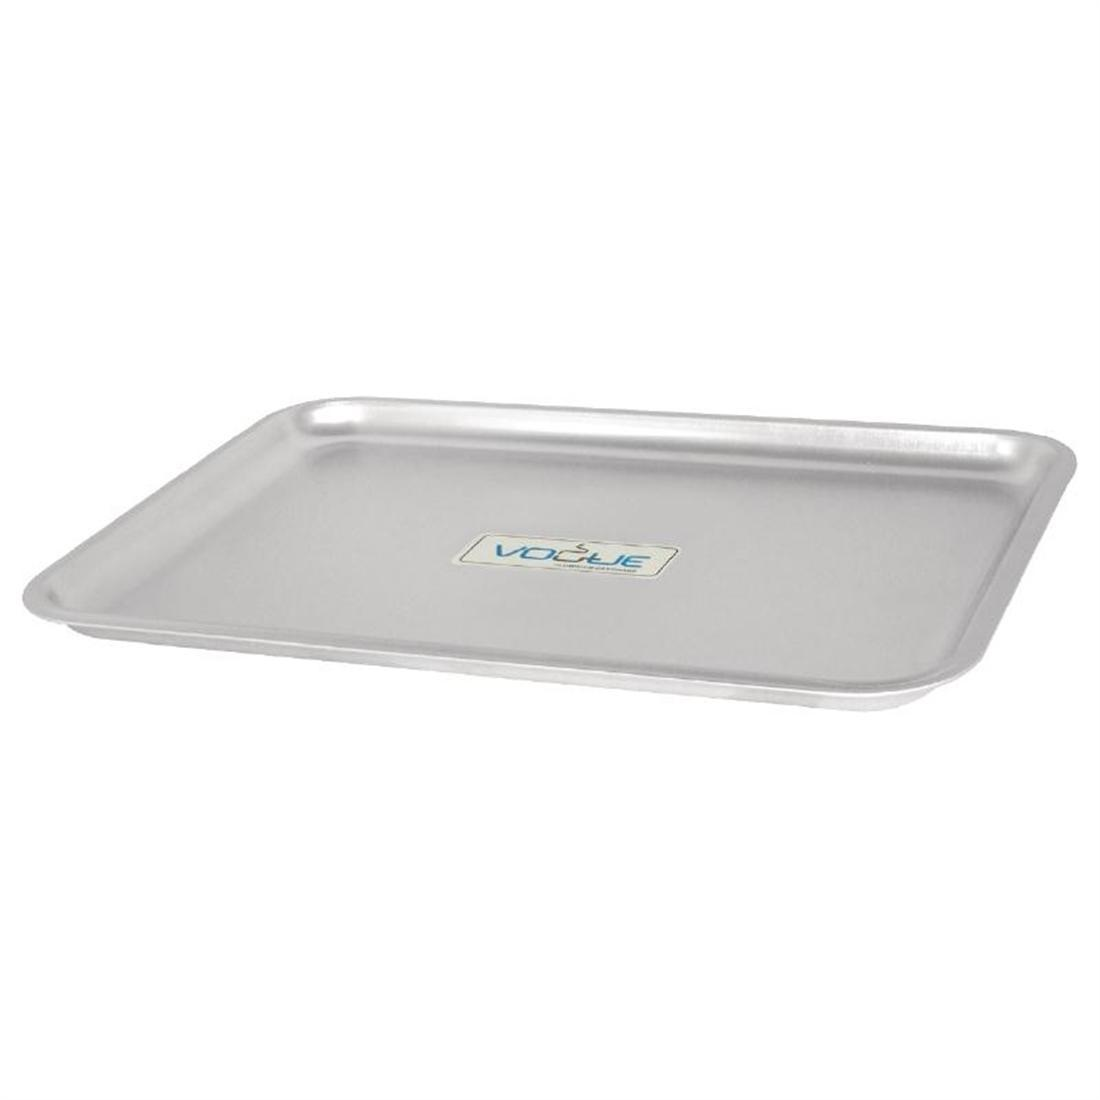 Vogue Aluminium Baking Tray 476 x 355mm - Each - K445